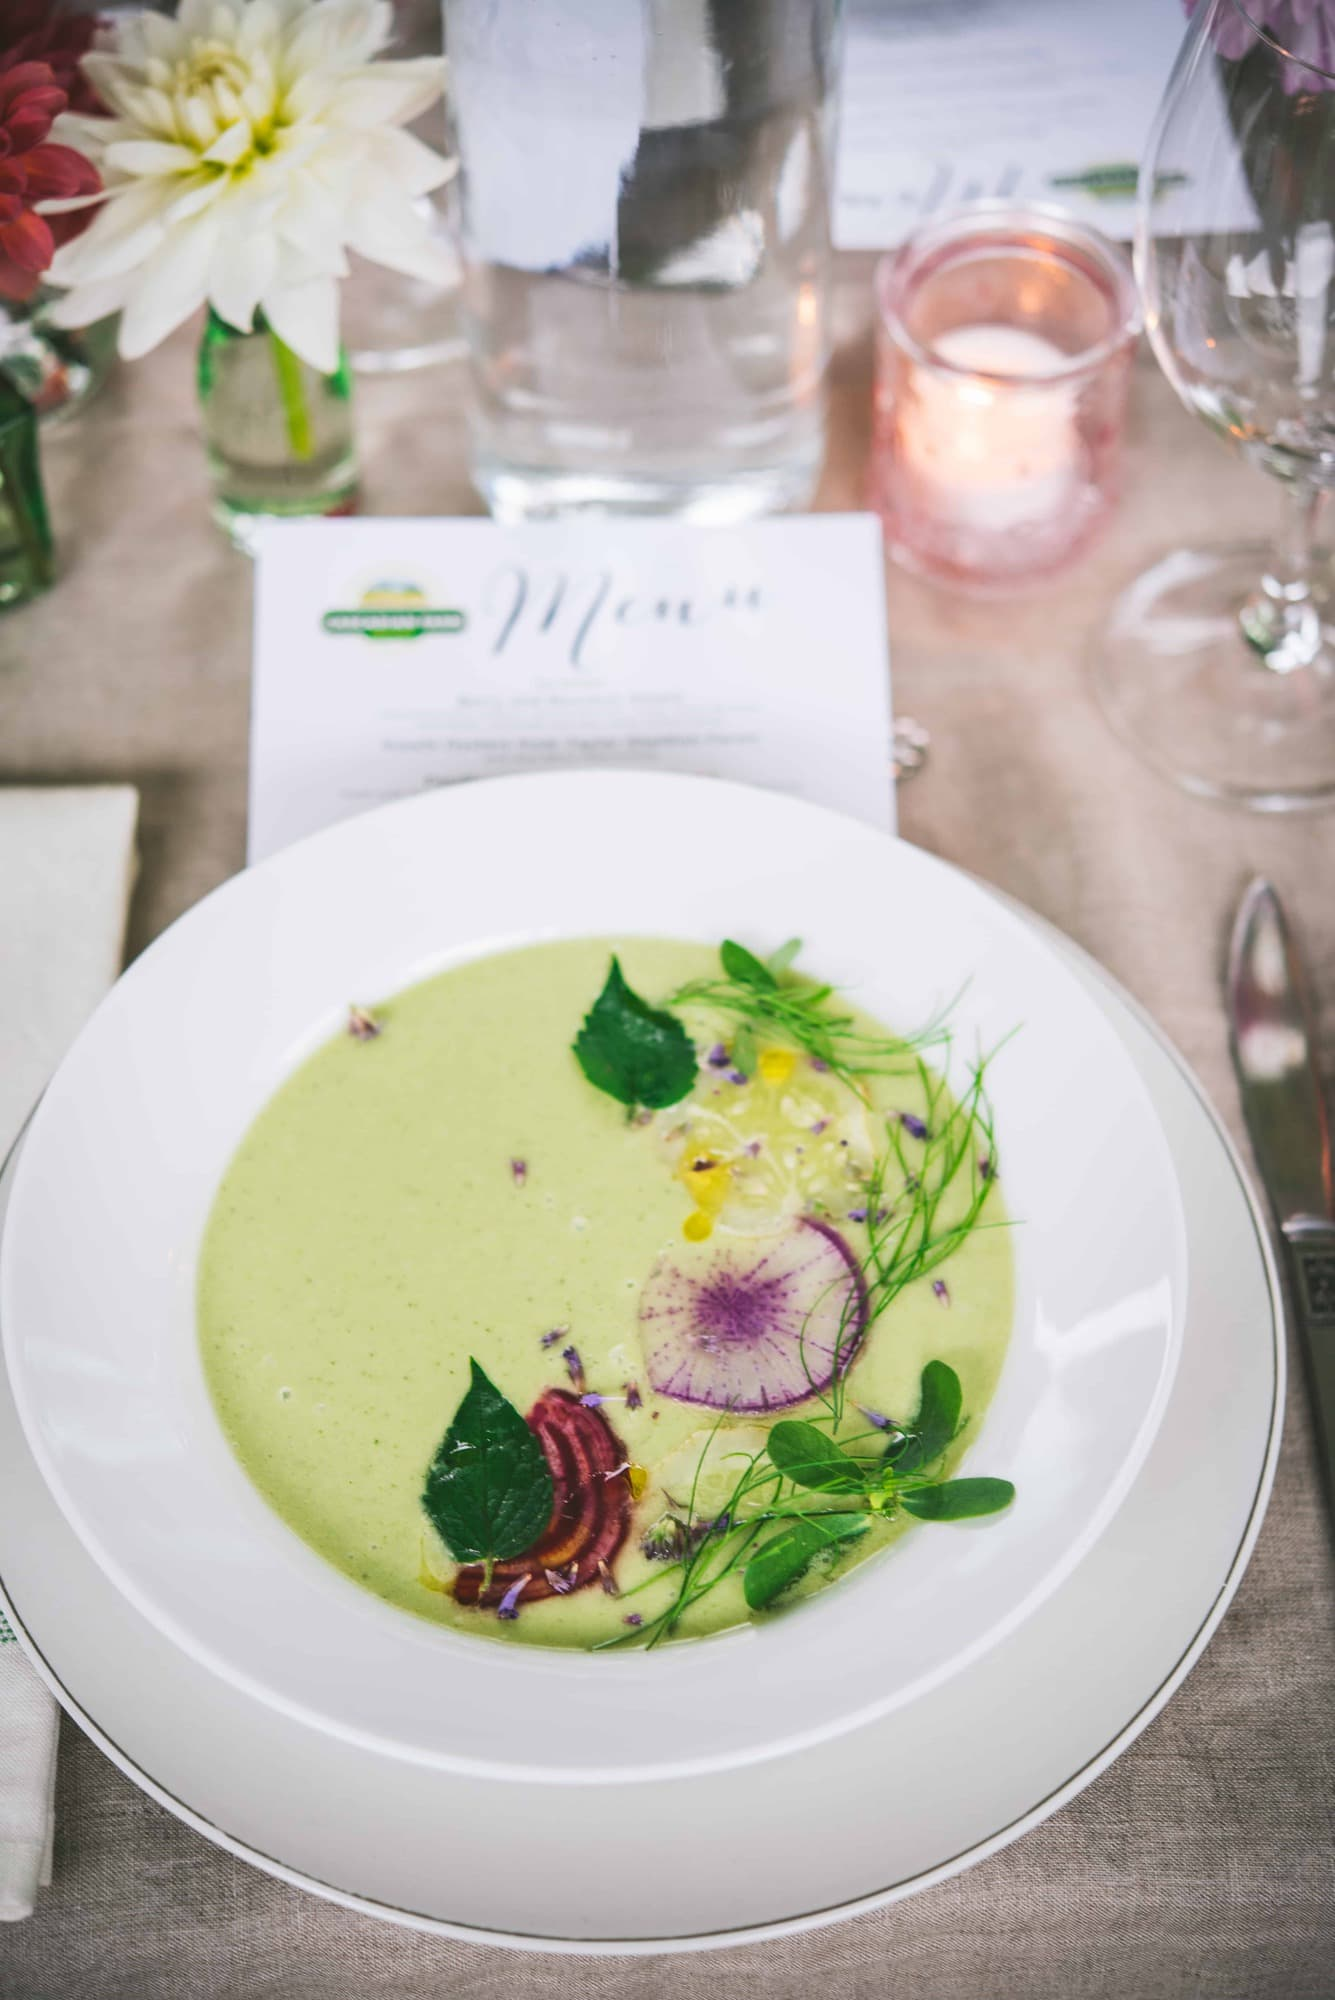 45 Degree angle of a light green appetizer soup with flowers at Cascadian Farms